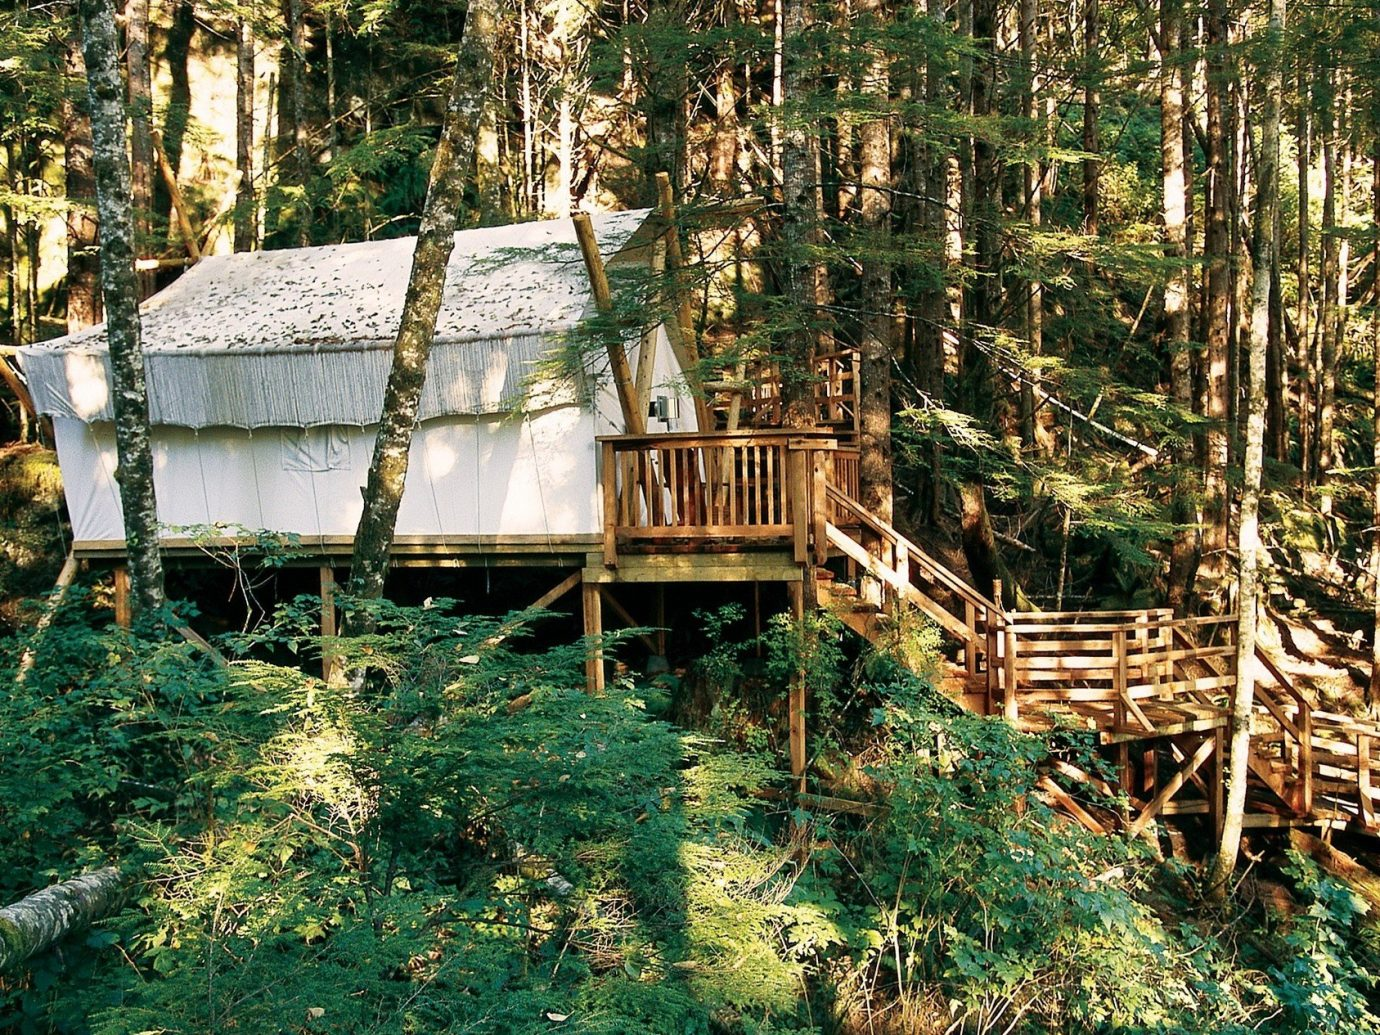 Glamping Hotels Outdoors + Adventure Weekend Getaways tree outdoor habitat grass wooden wilderness natural environment Forest ecosystem woodland wood Jungle rural area rainforest hut log cabin wooded surrounded